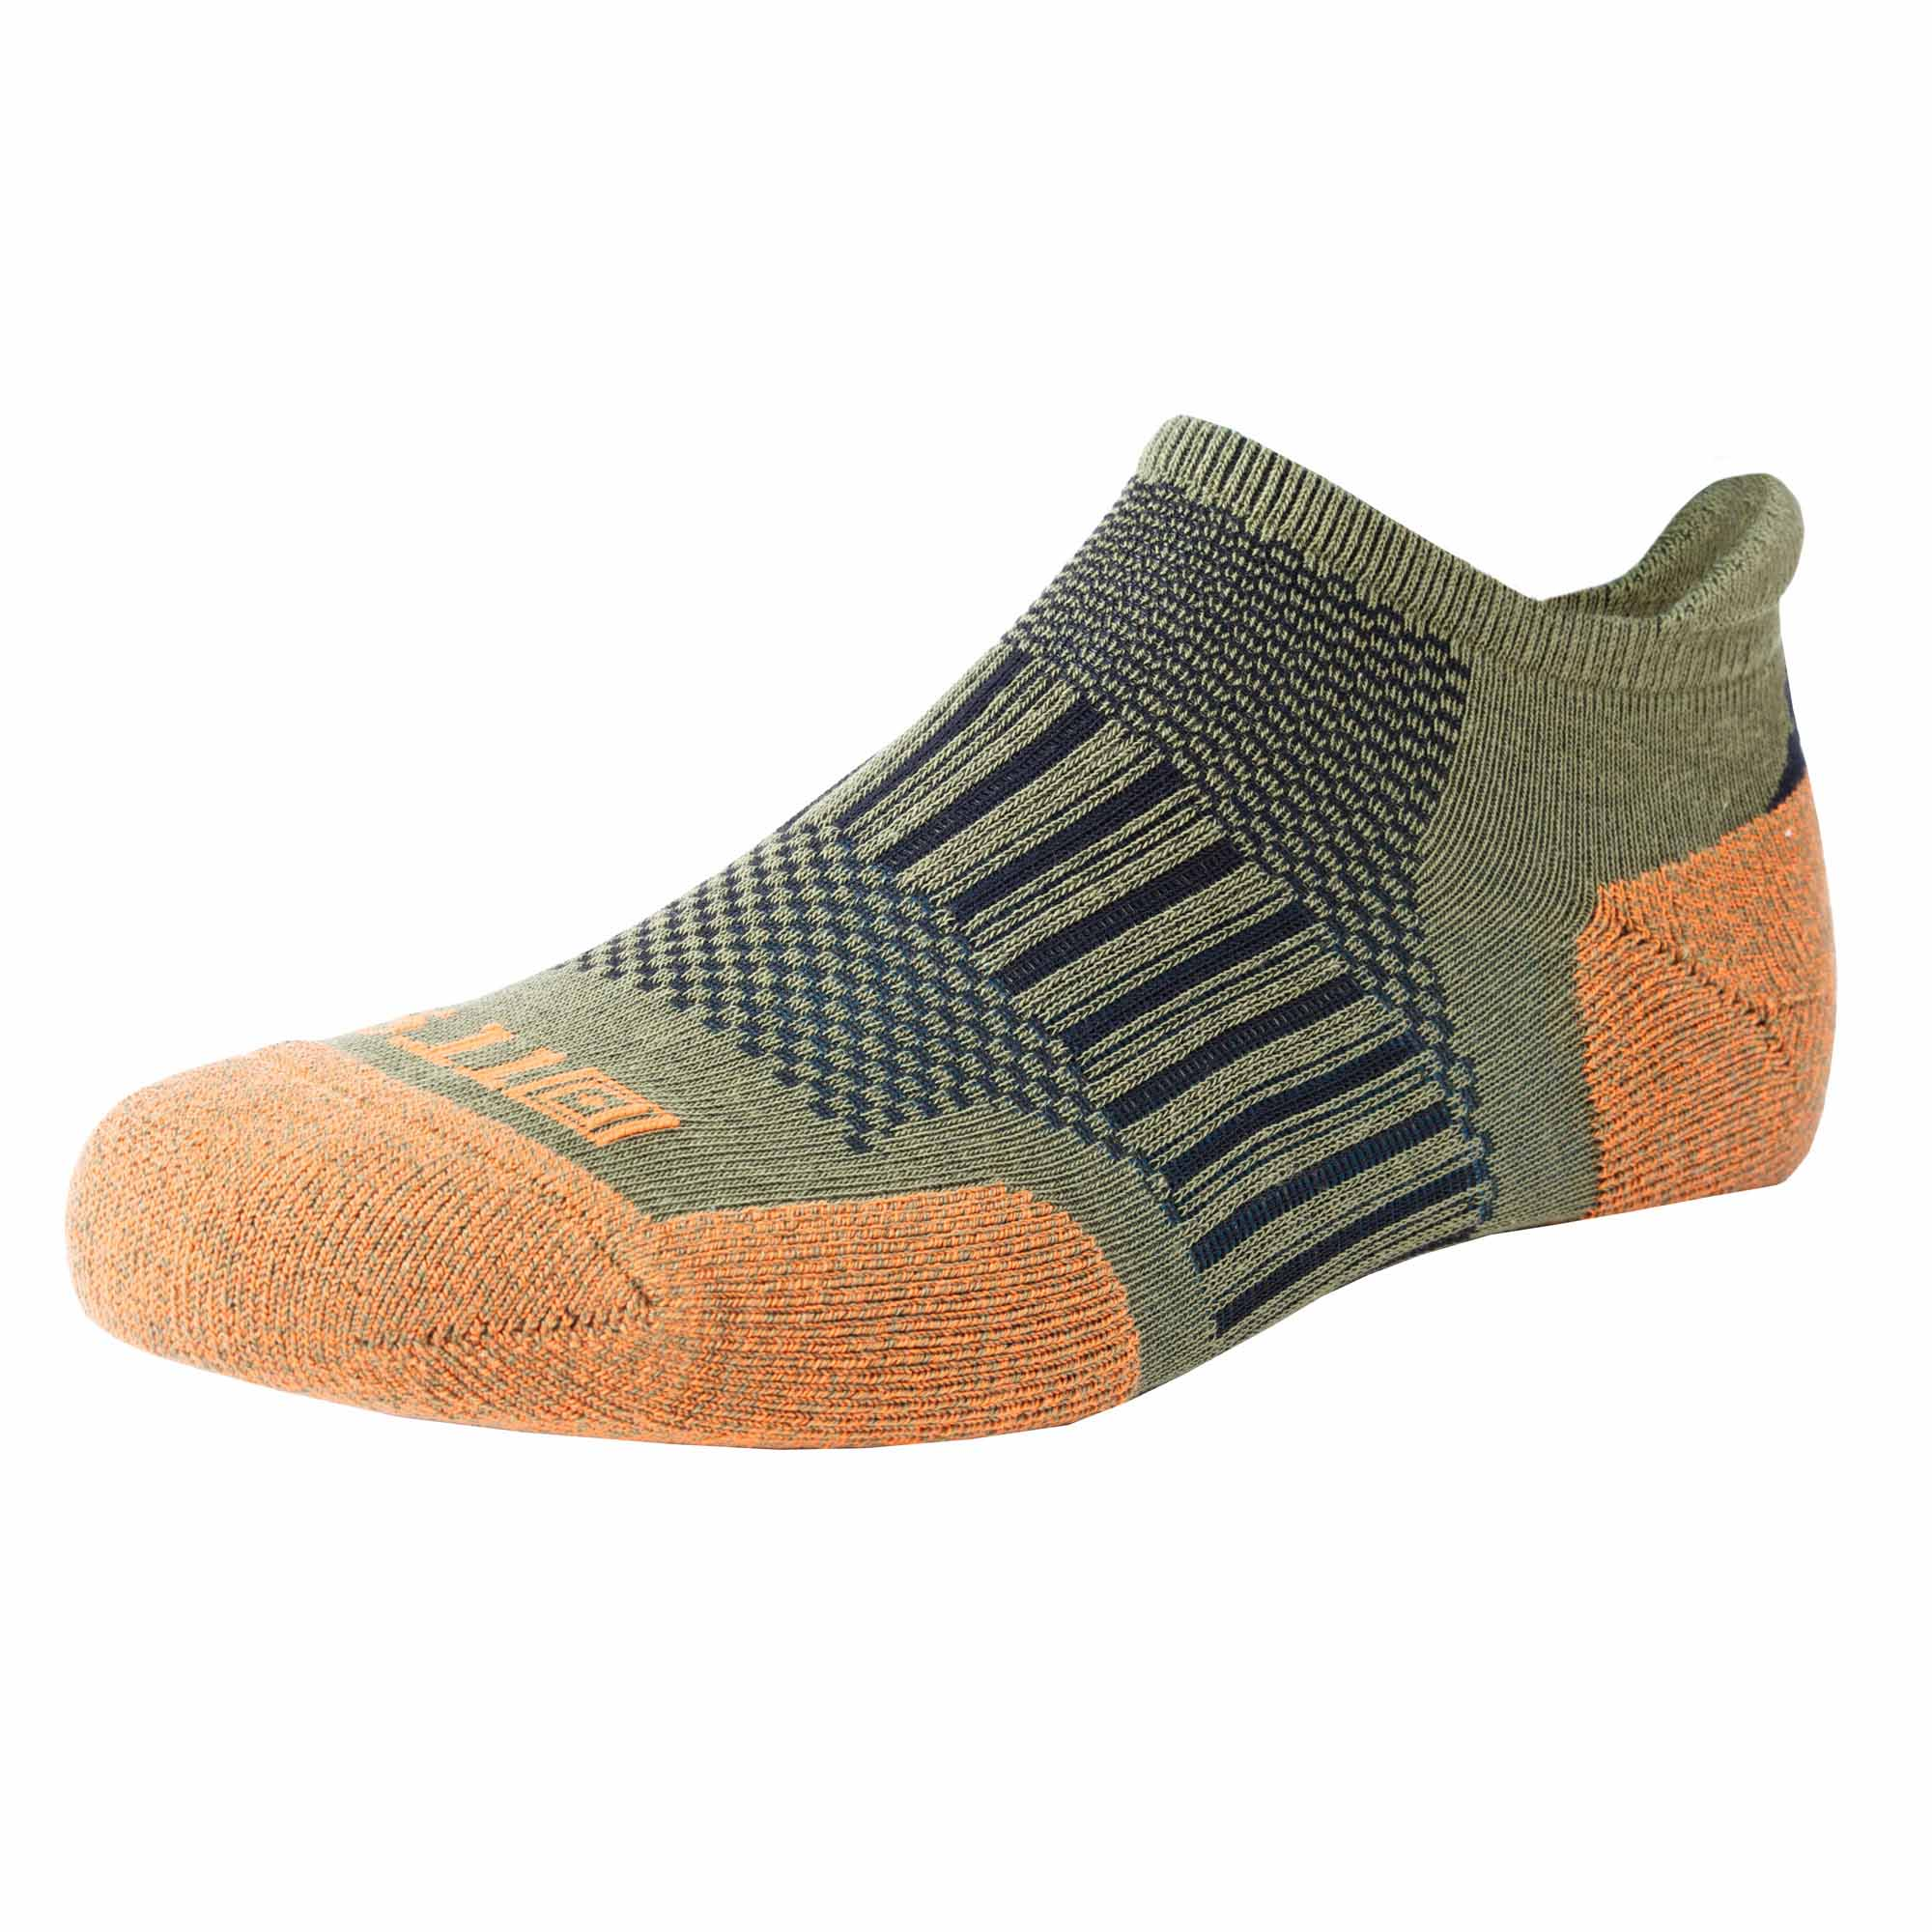 5.11 RECON® Ankle Sock from 5.11 Tactical (Green)